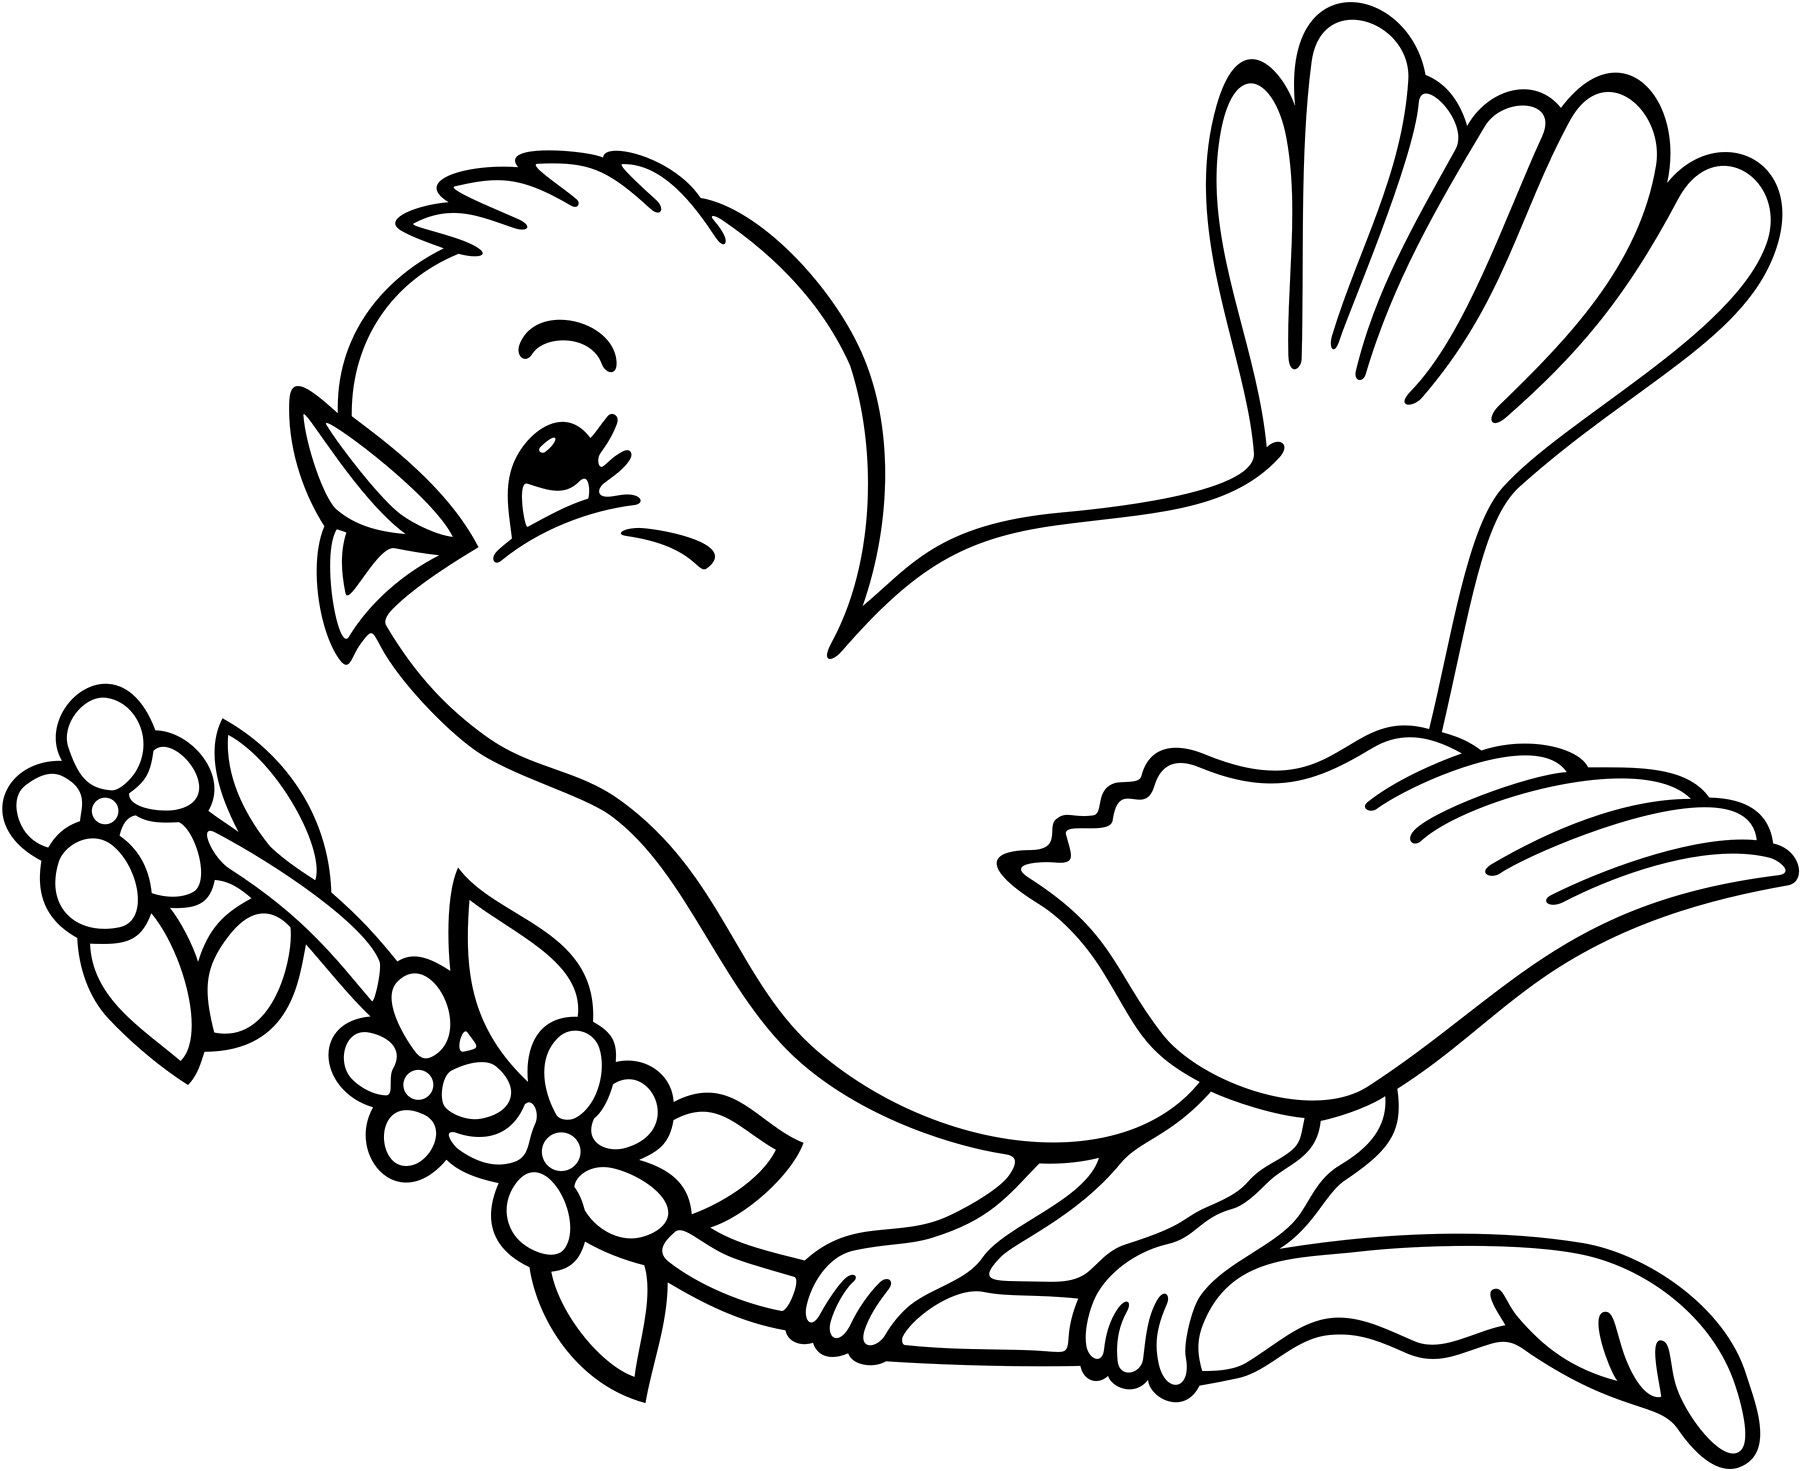 coloring book bird pages - photo#6